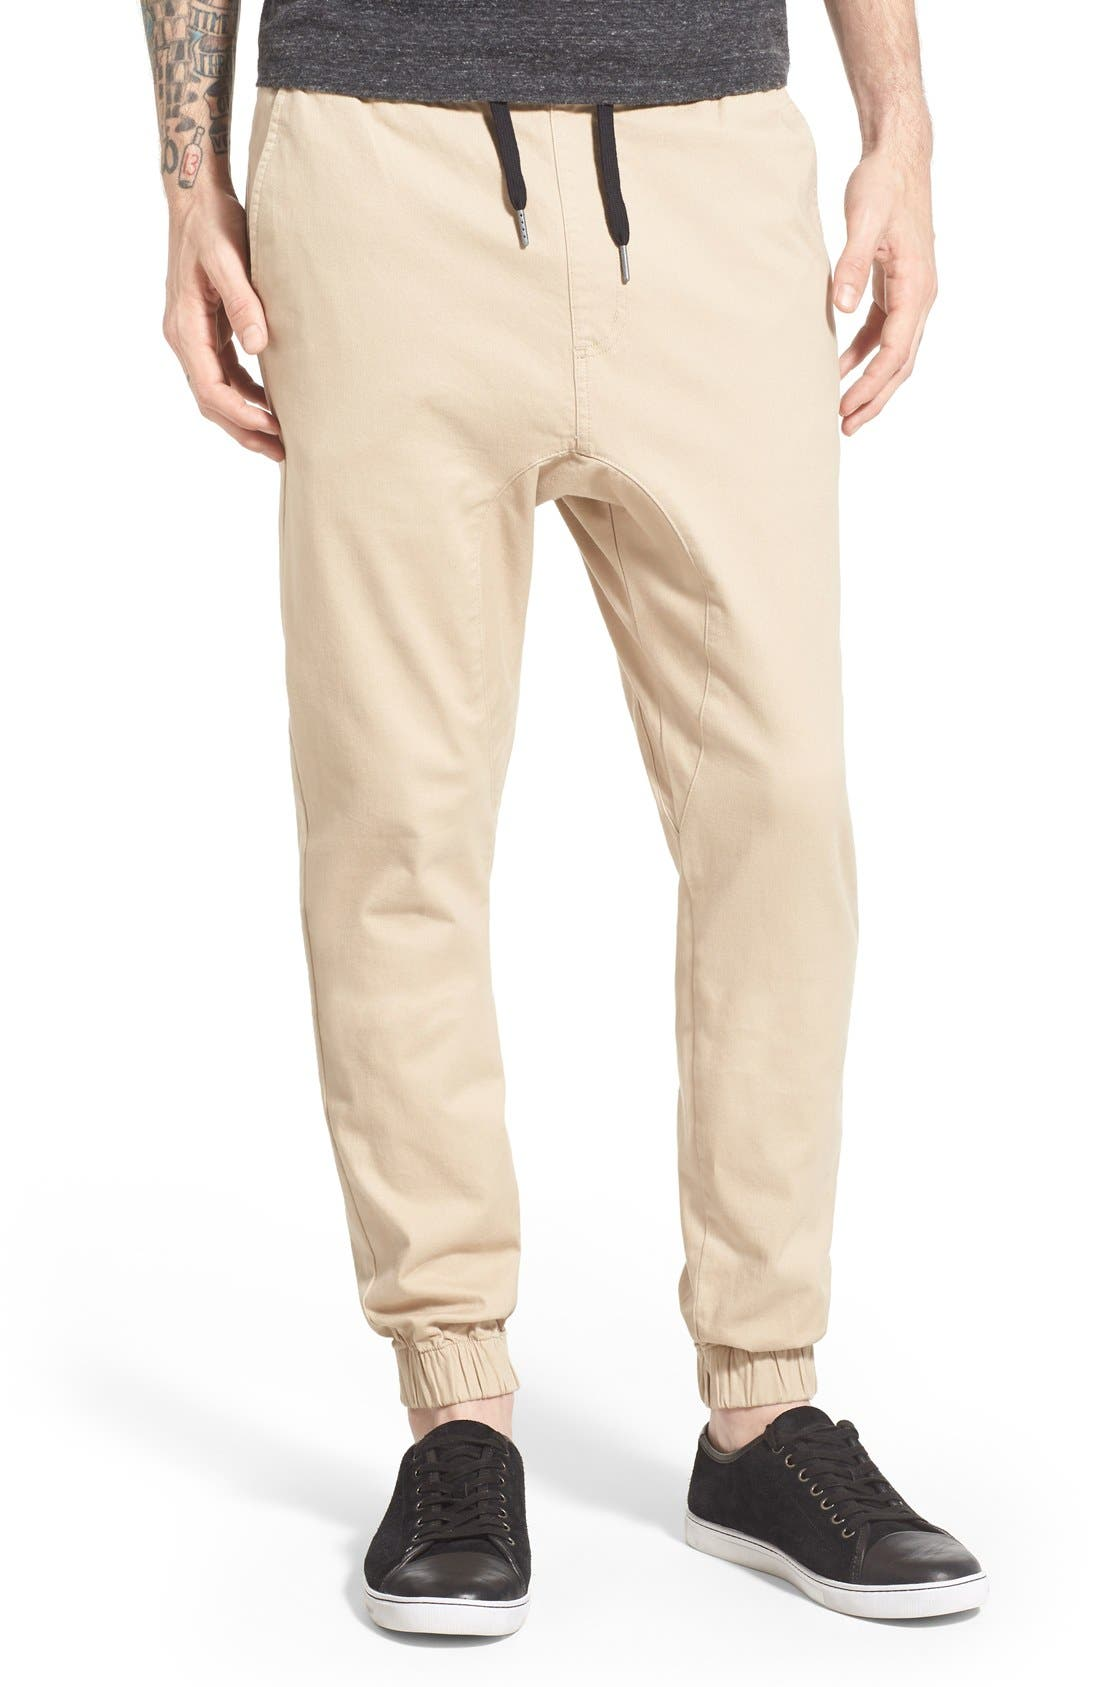 Alternate Image 1 Selected - Zanerobe 'Sureshot' Jogger Pants